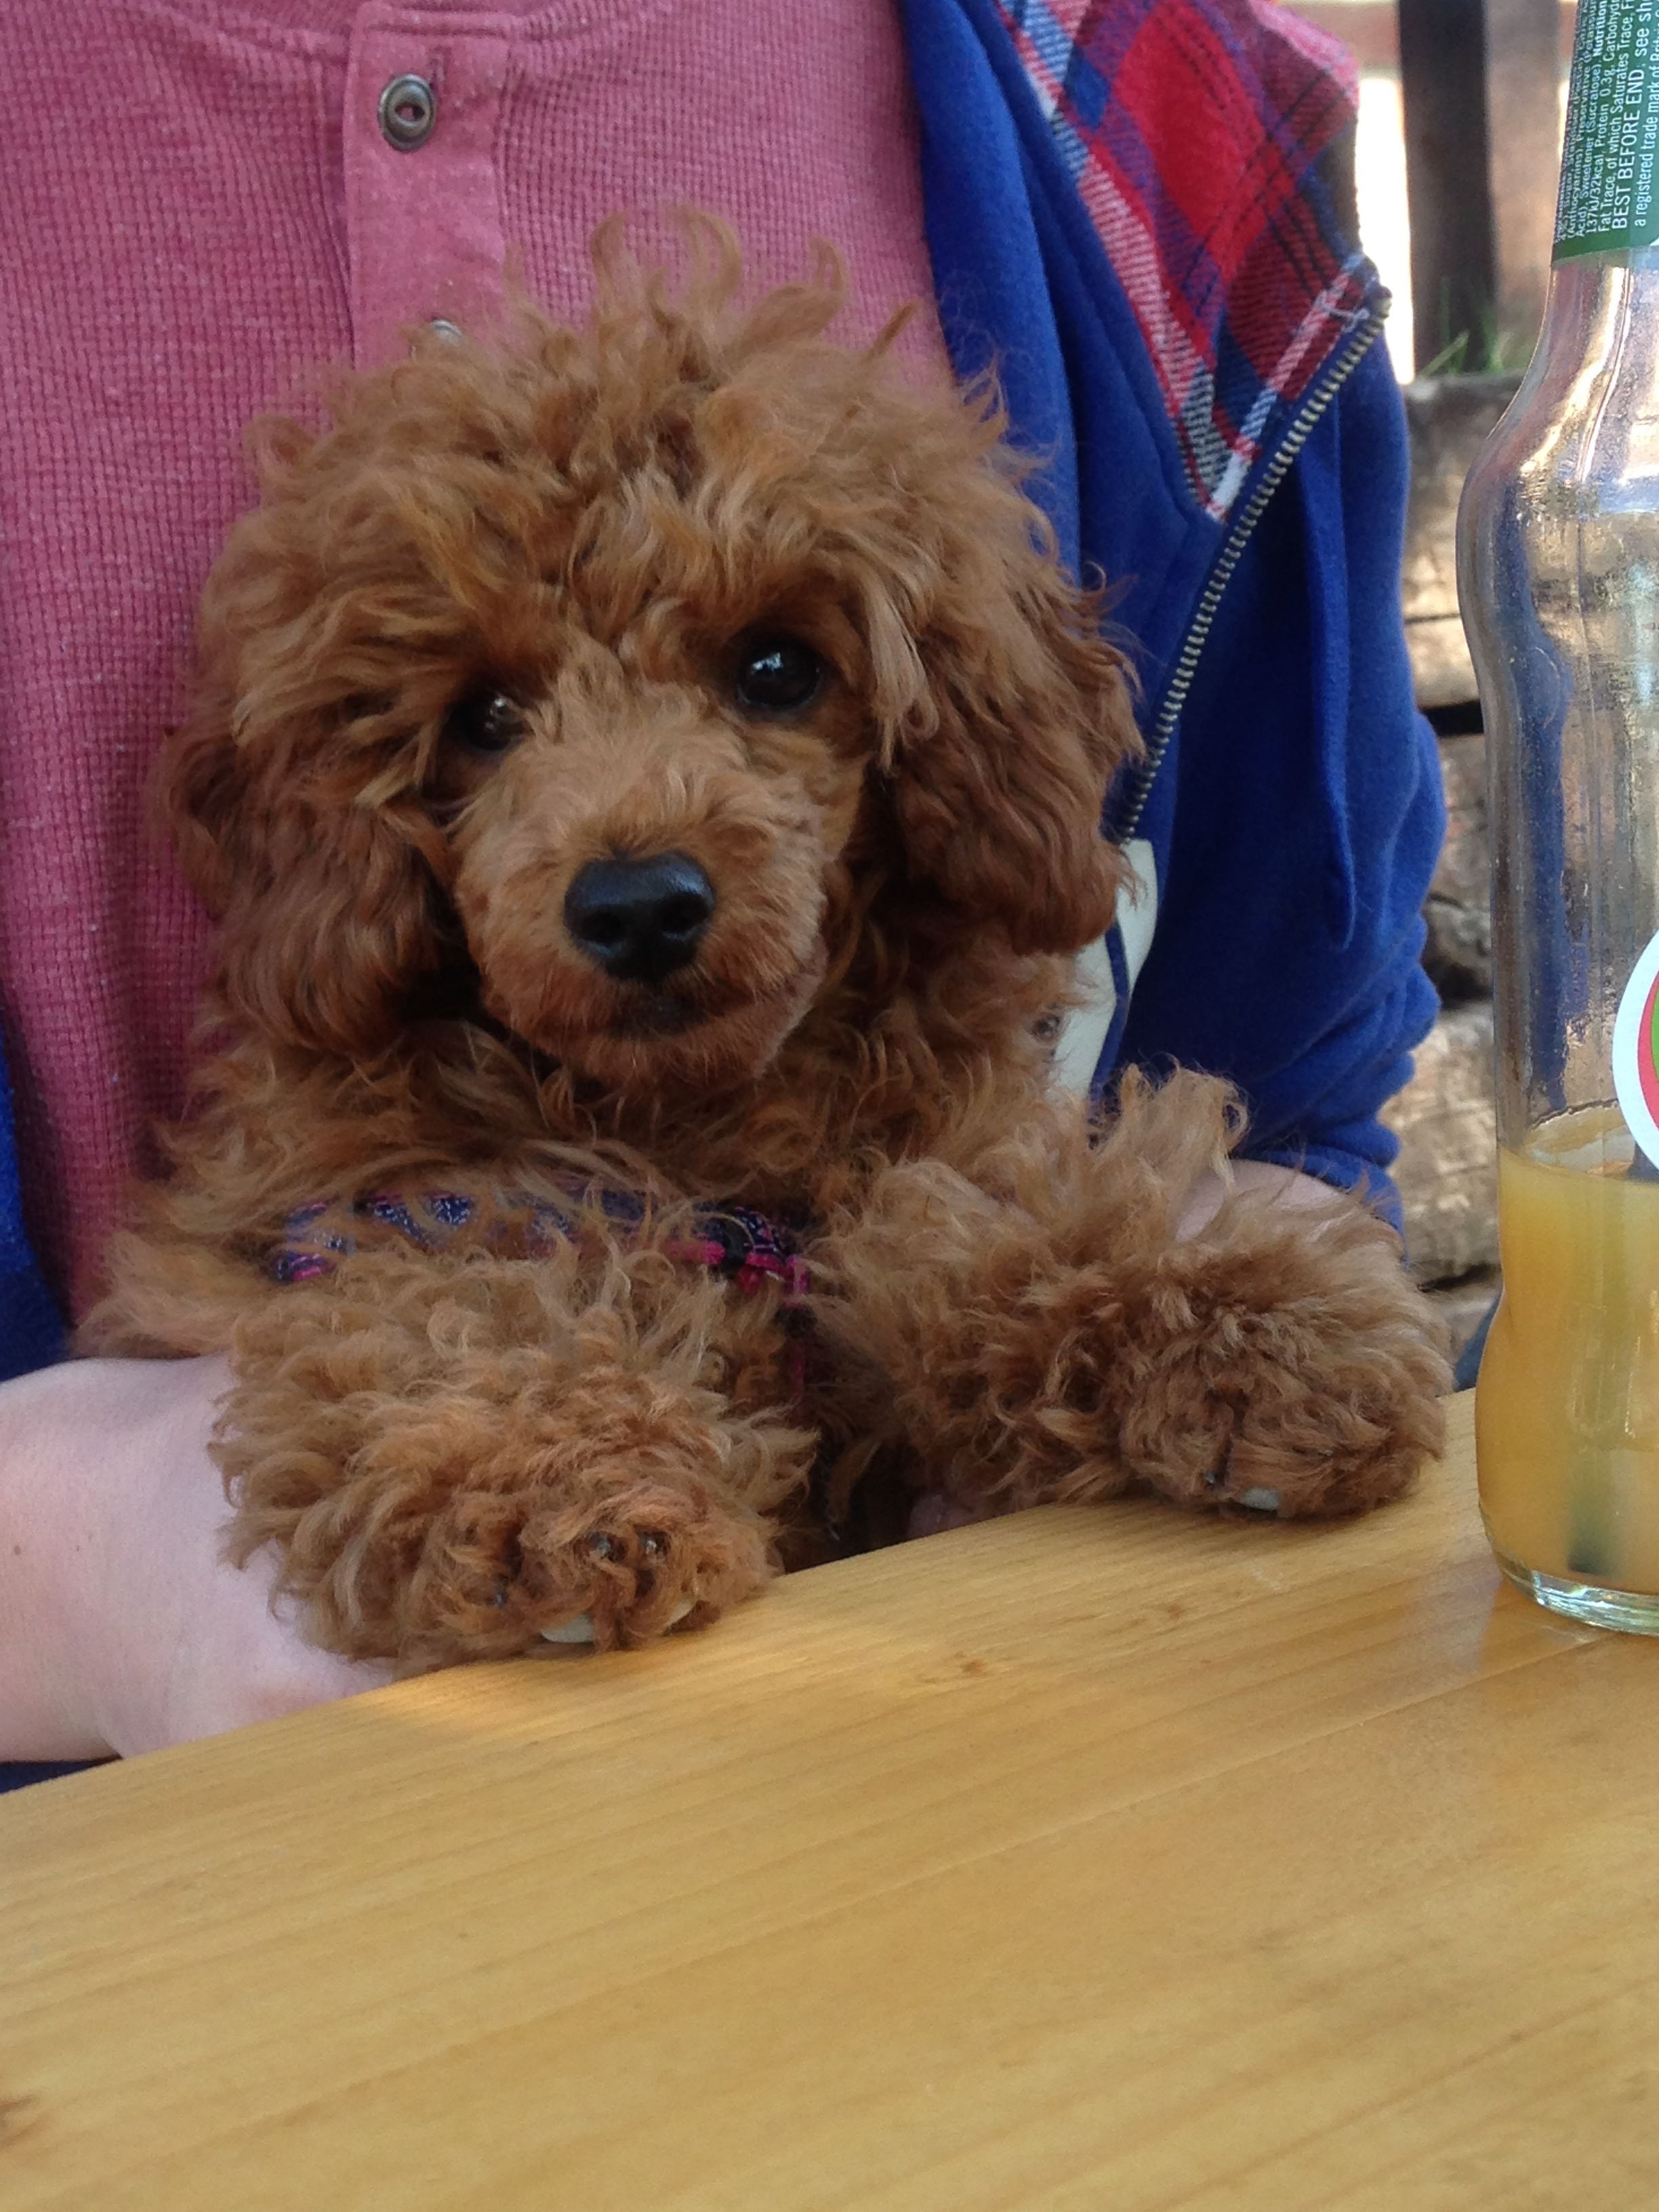 Dog friendly Pubs, Tea Rooms and Restaurants